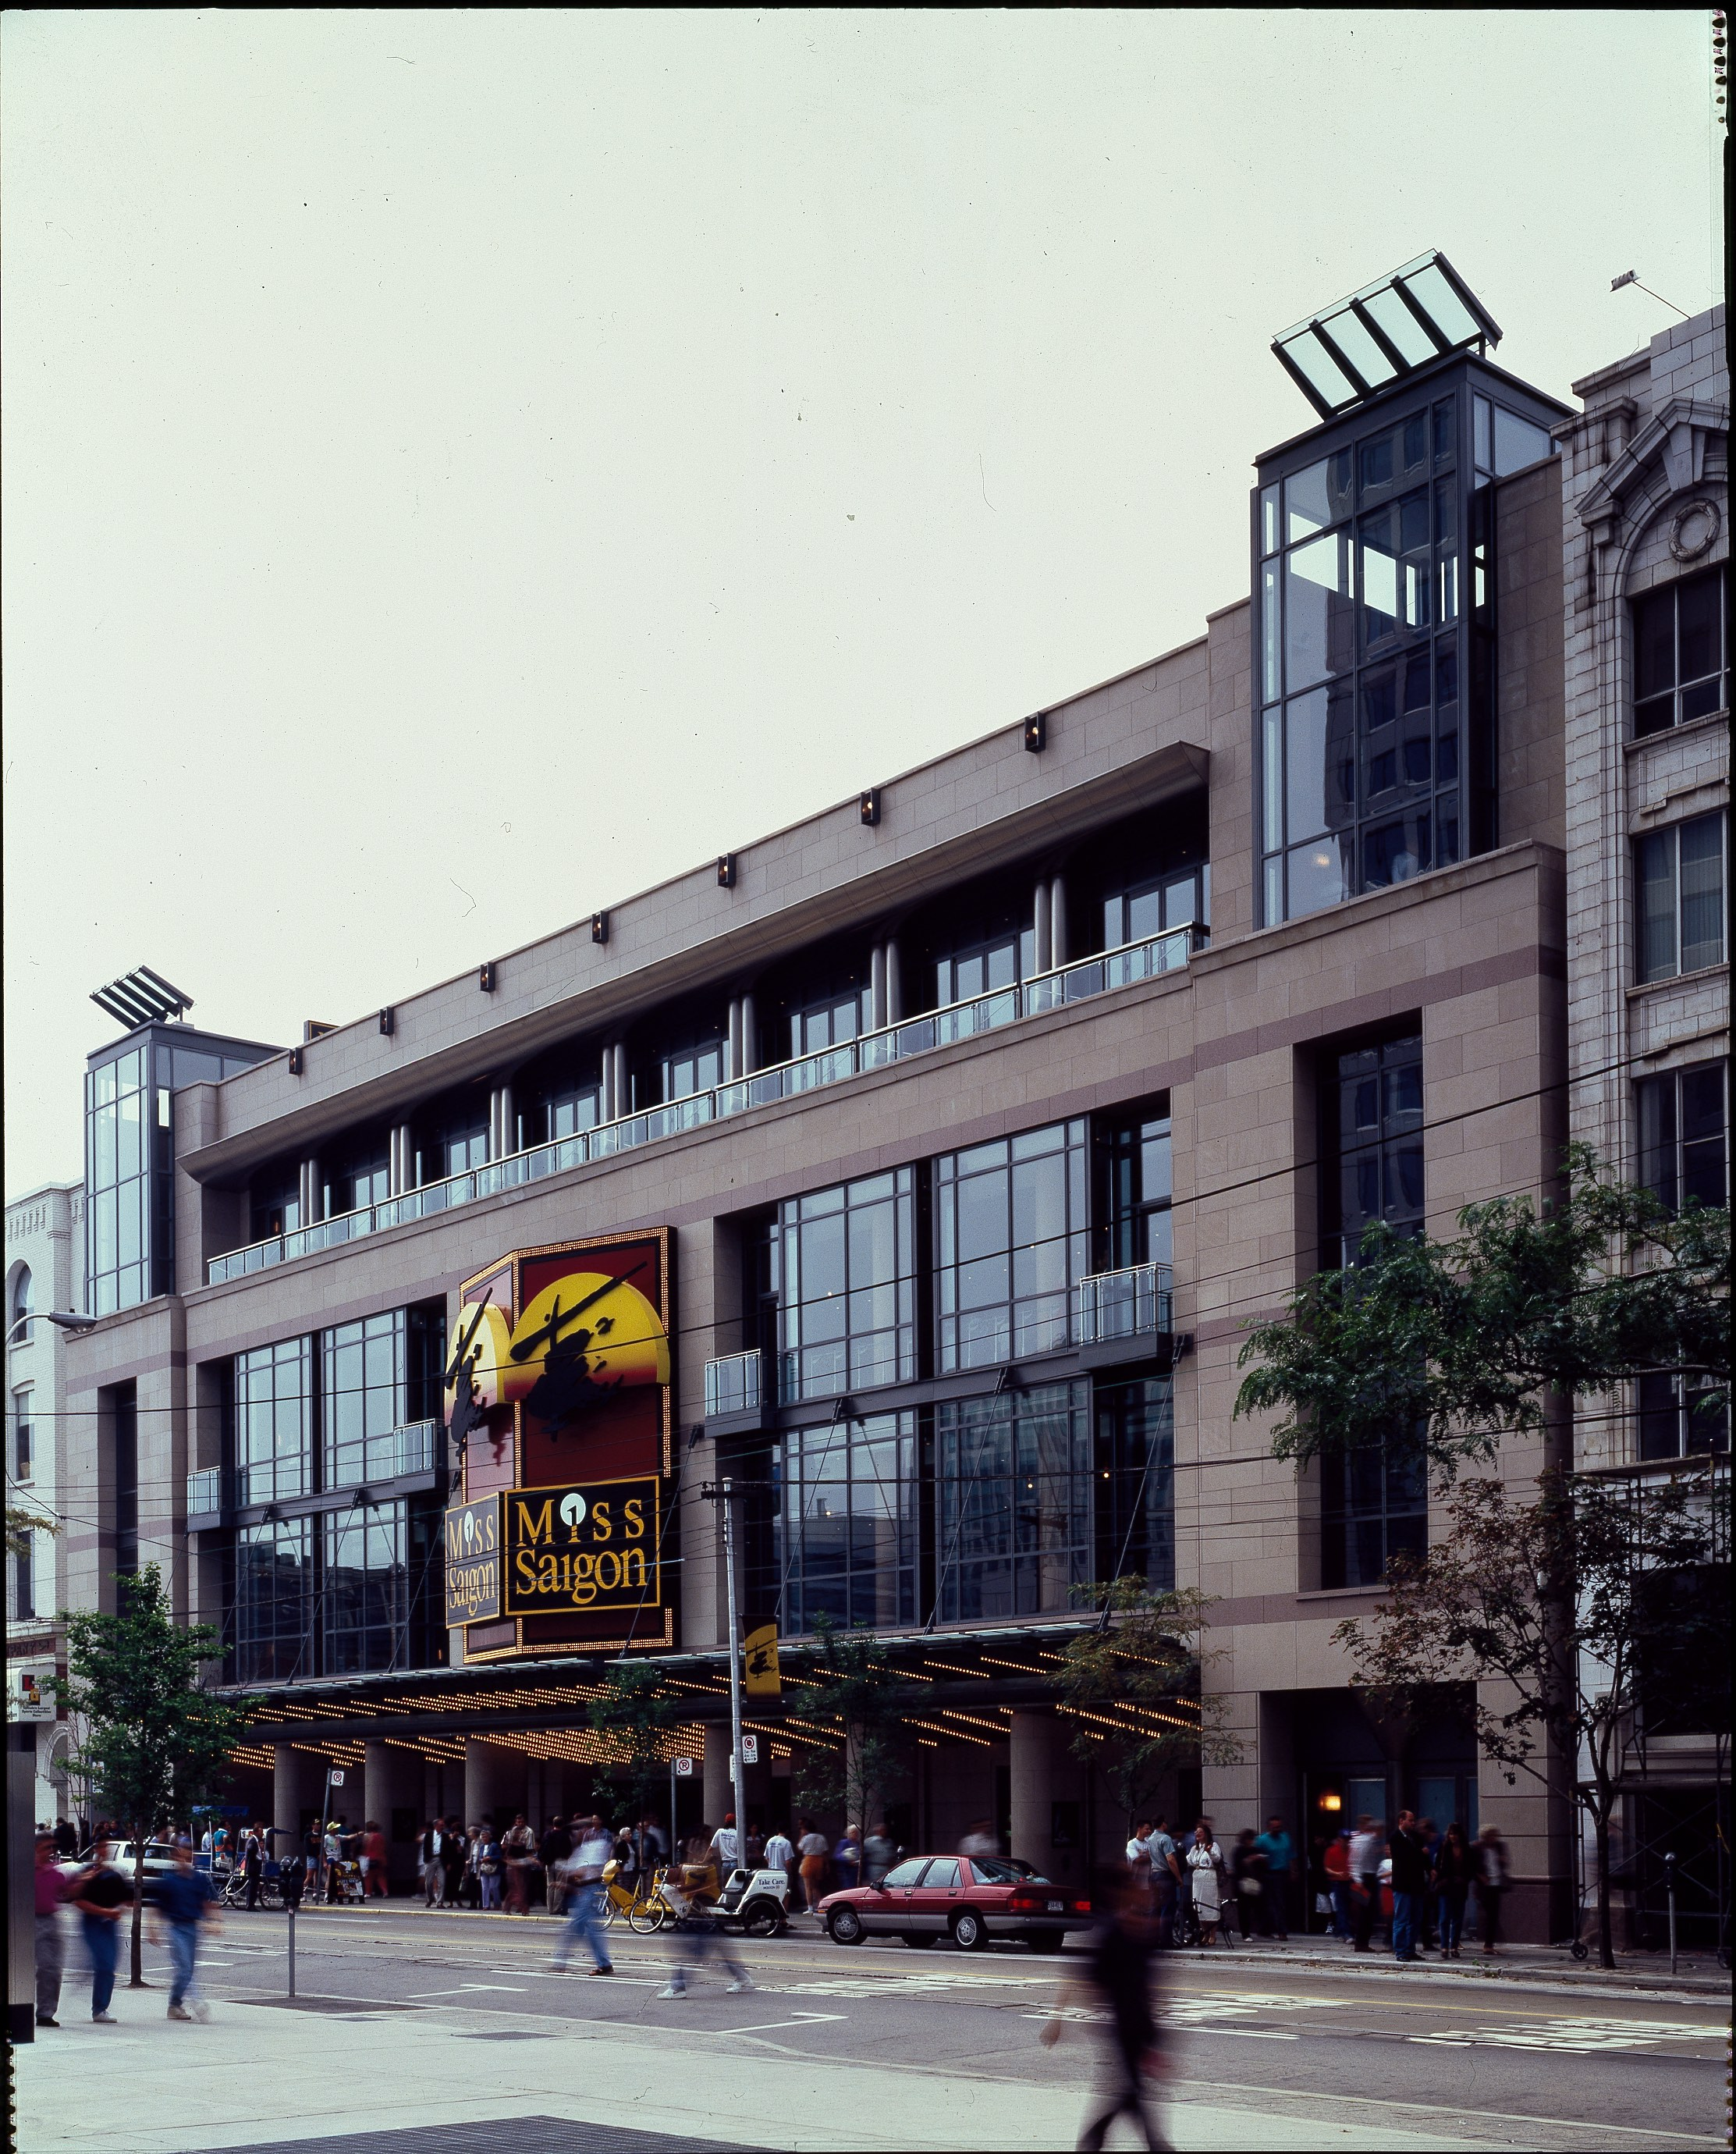 PRINCESS OF WALES THEATRE - EXTERIOR AND INTERIOR